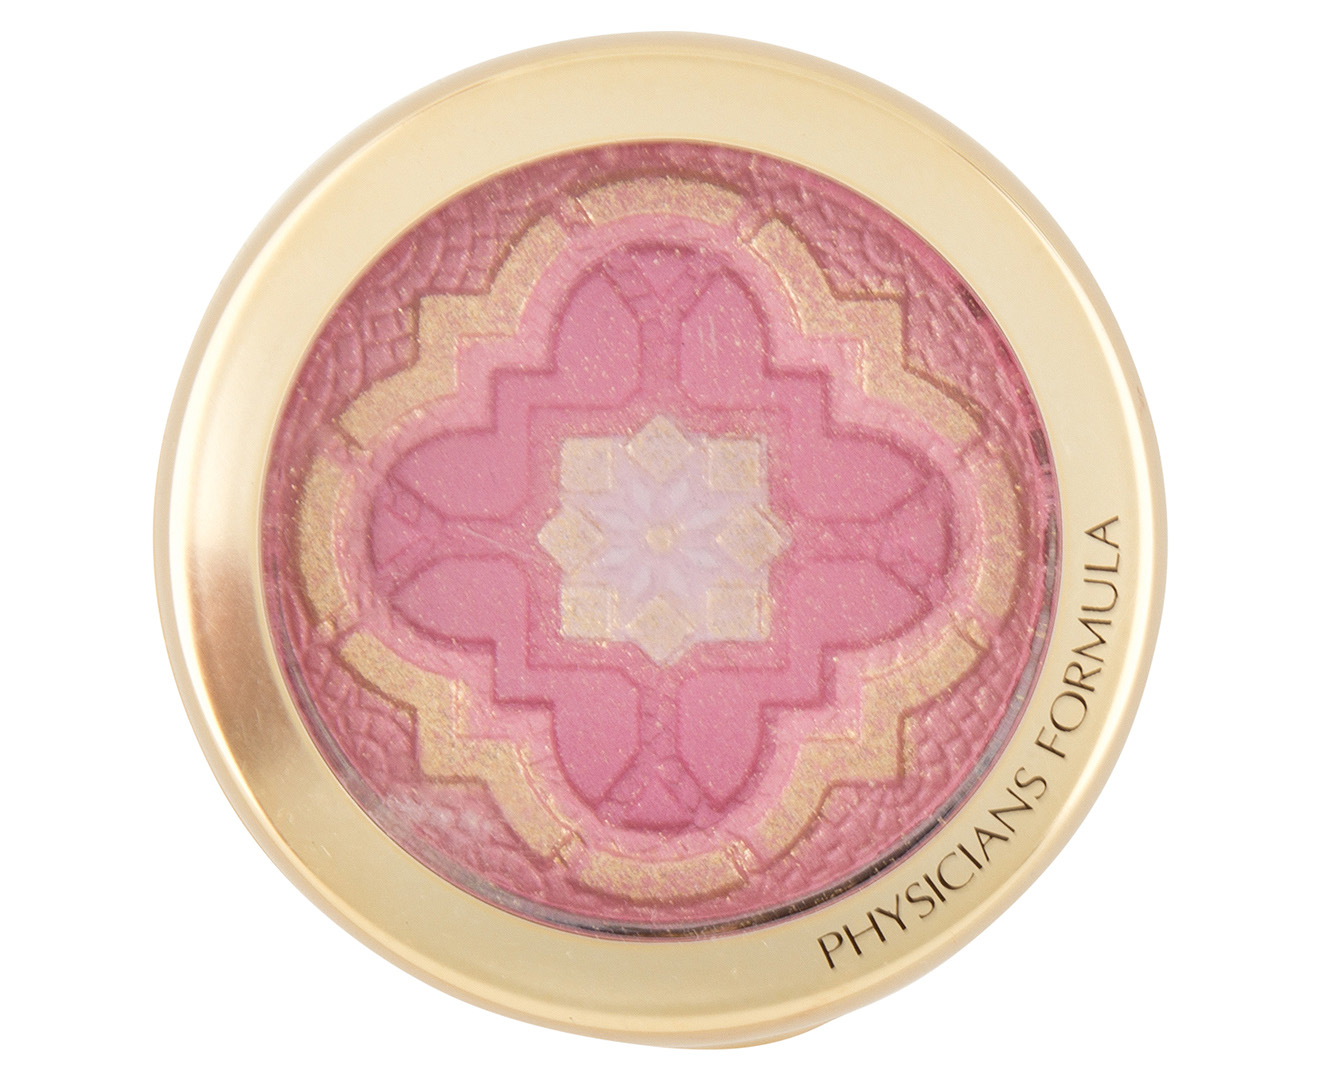 Physicians Formula Argan Wear Ultra-Nourishing Blush 7g ...